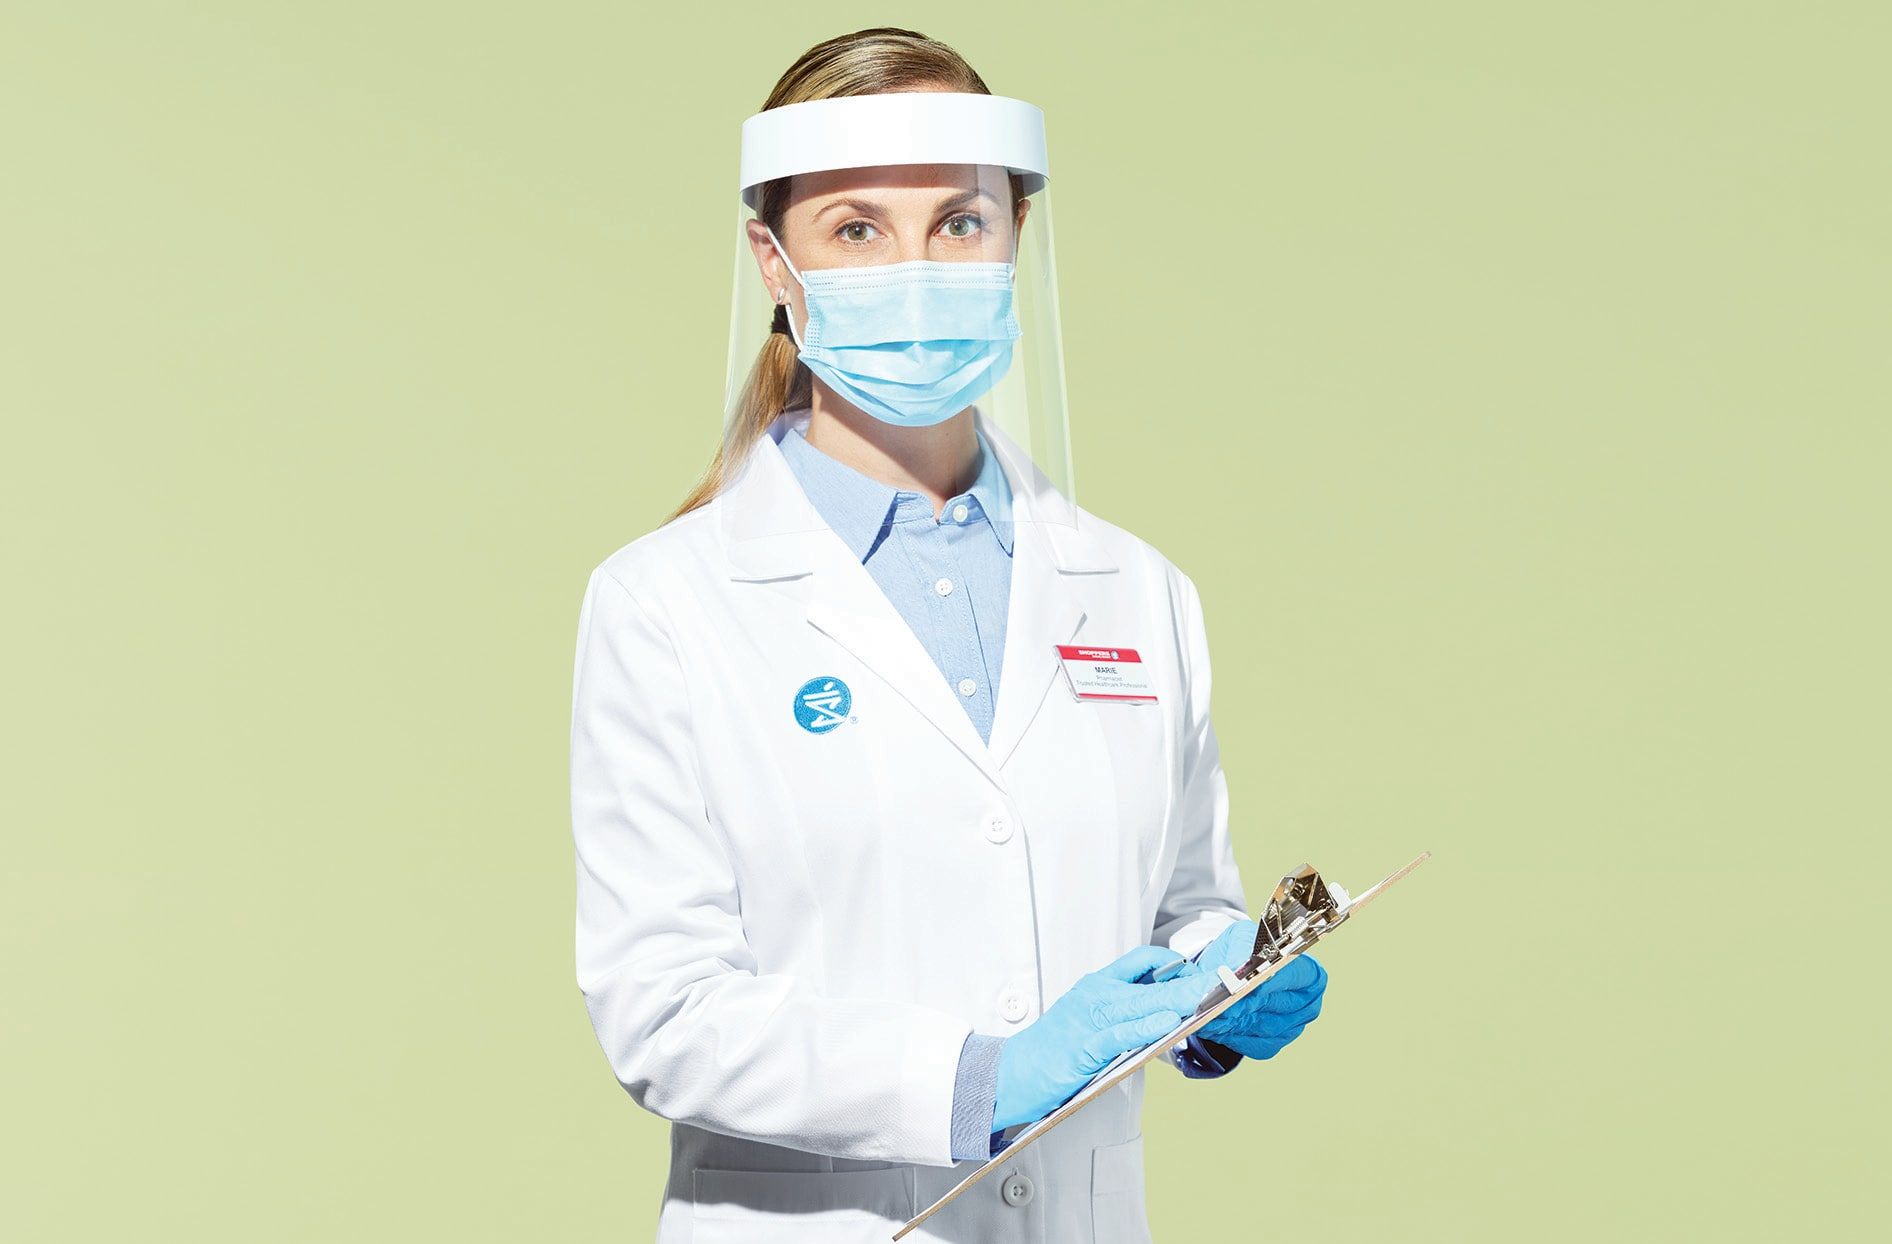 A Shoppers Drug Mart pharmacist wearing a mask, face shield and gloves